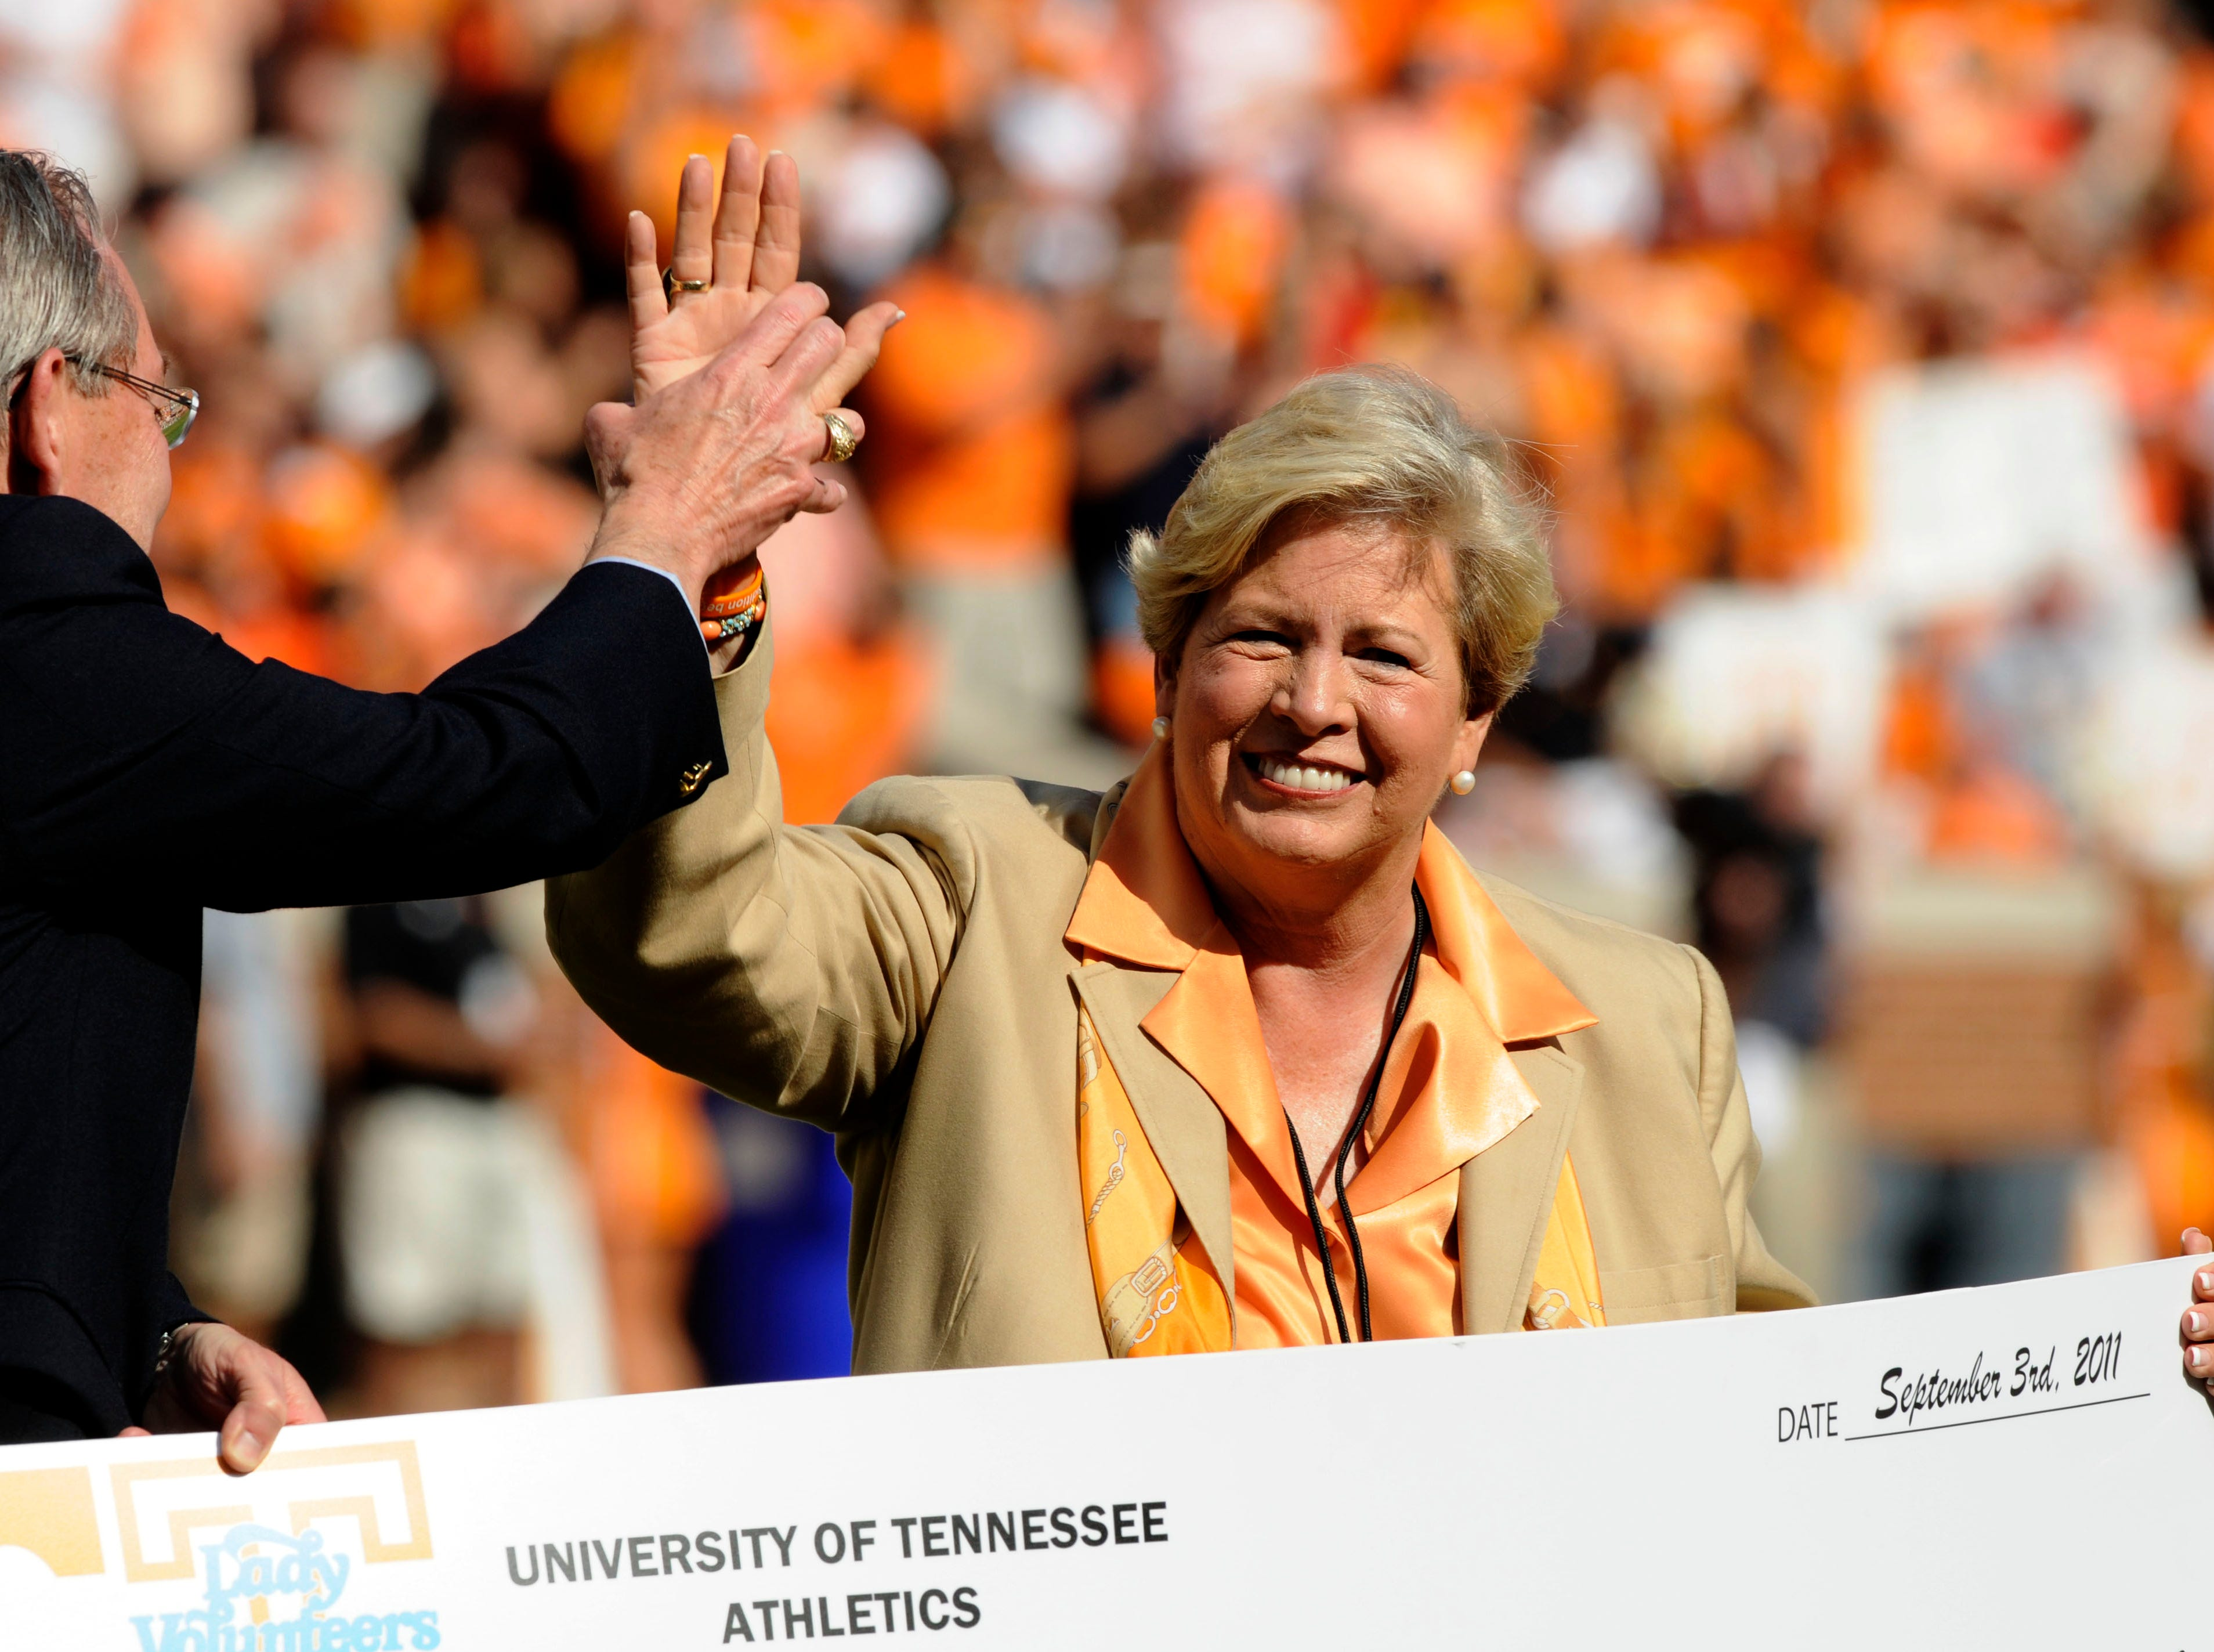 UT Athletics Director Joan Cronan gives a high-five to UT Chancellor Dr. Jimmy Cheek during quick ceremony on the field recognizing her and the athletic department's $5 million donation to the university  Saturday, Sep. 10, 2011 in Neyland Stadium.